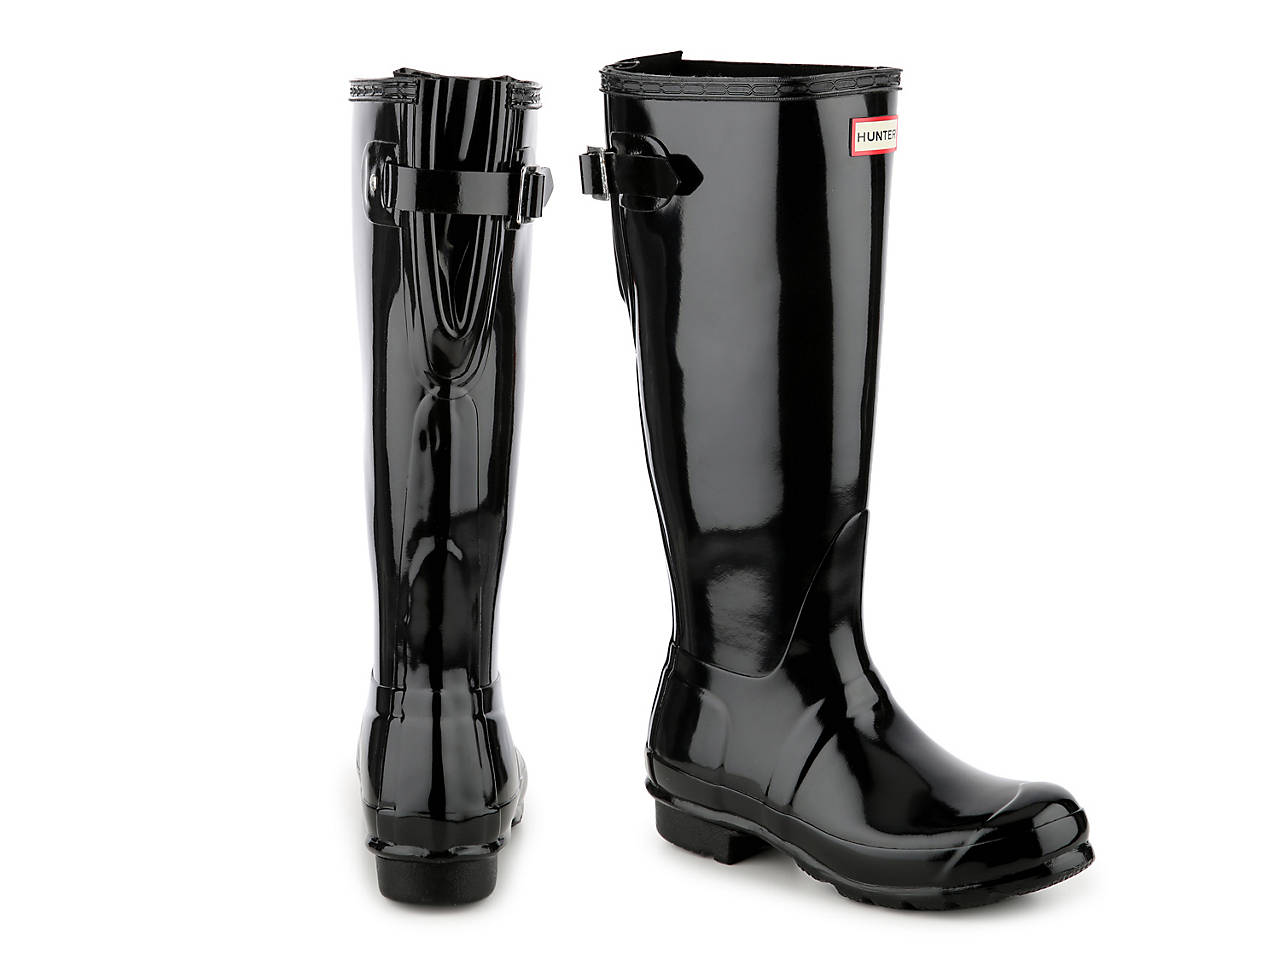 e09c5b0ffa HUNTER Original Tall Gloss Back Adjustable Rain Boot Women's Shoes | DSW